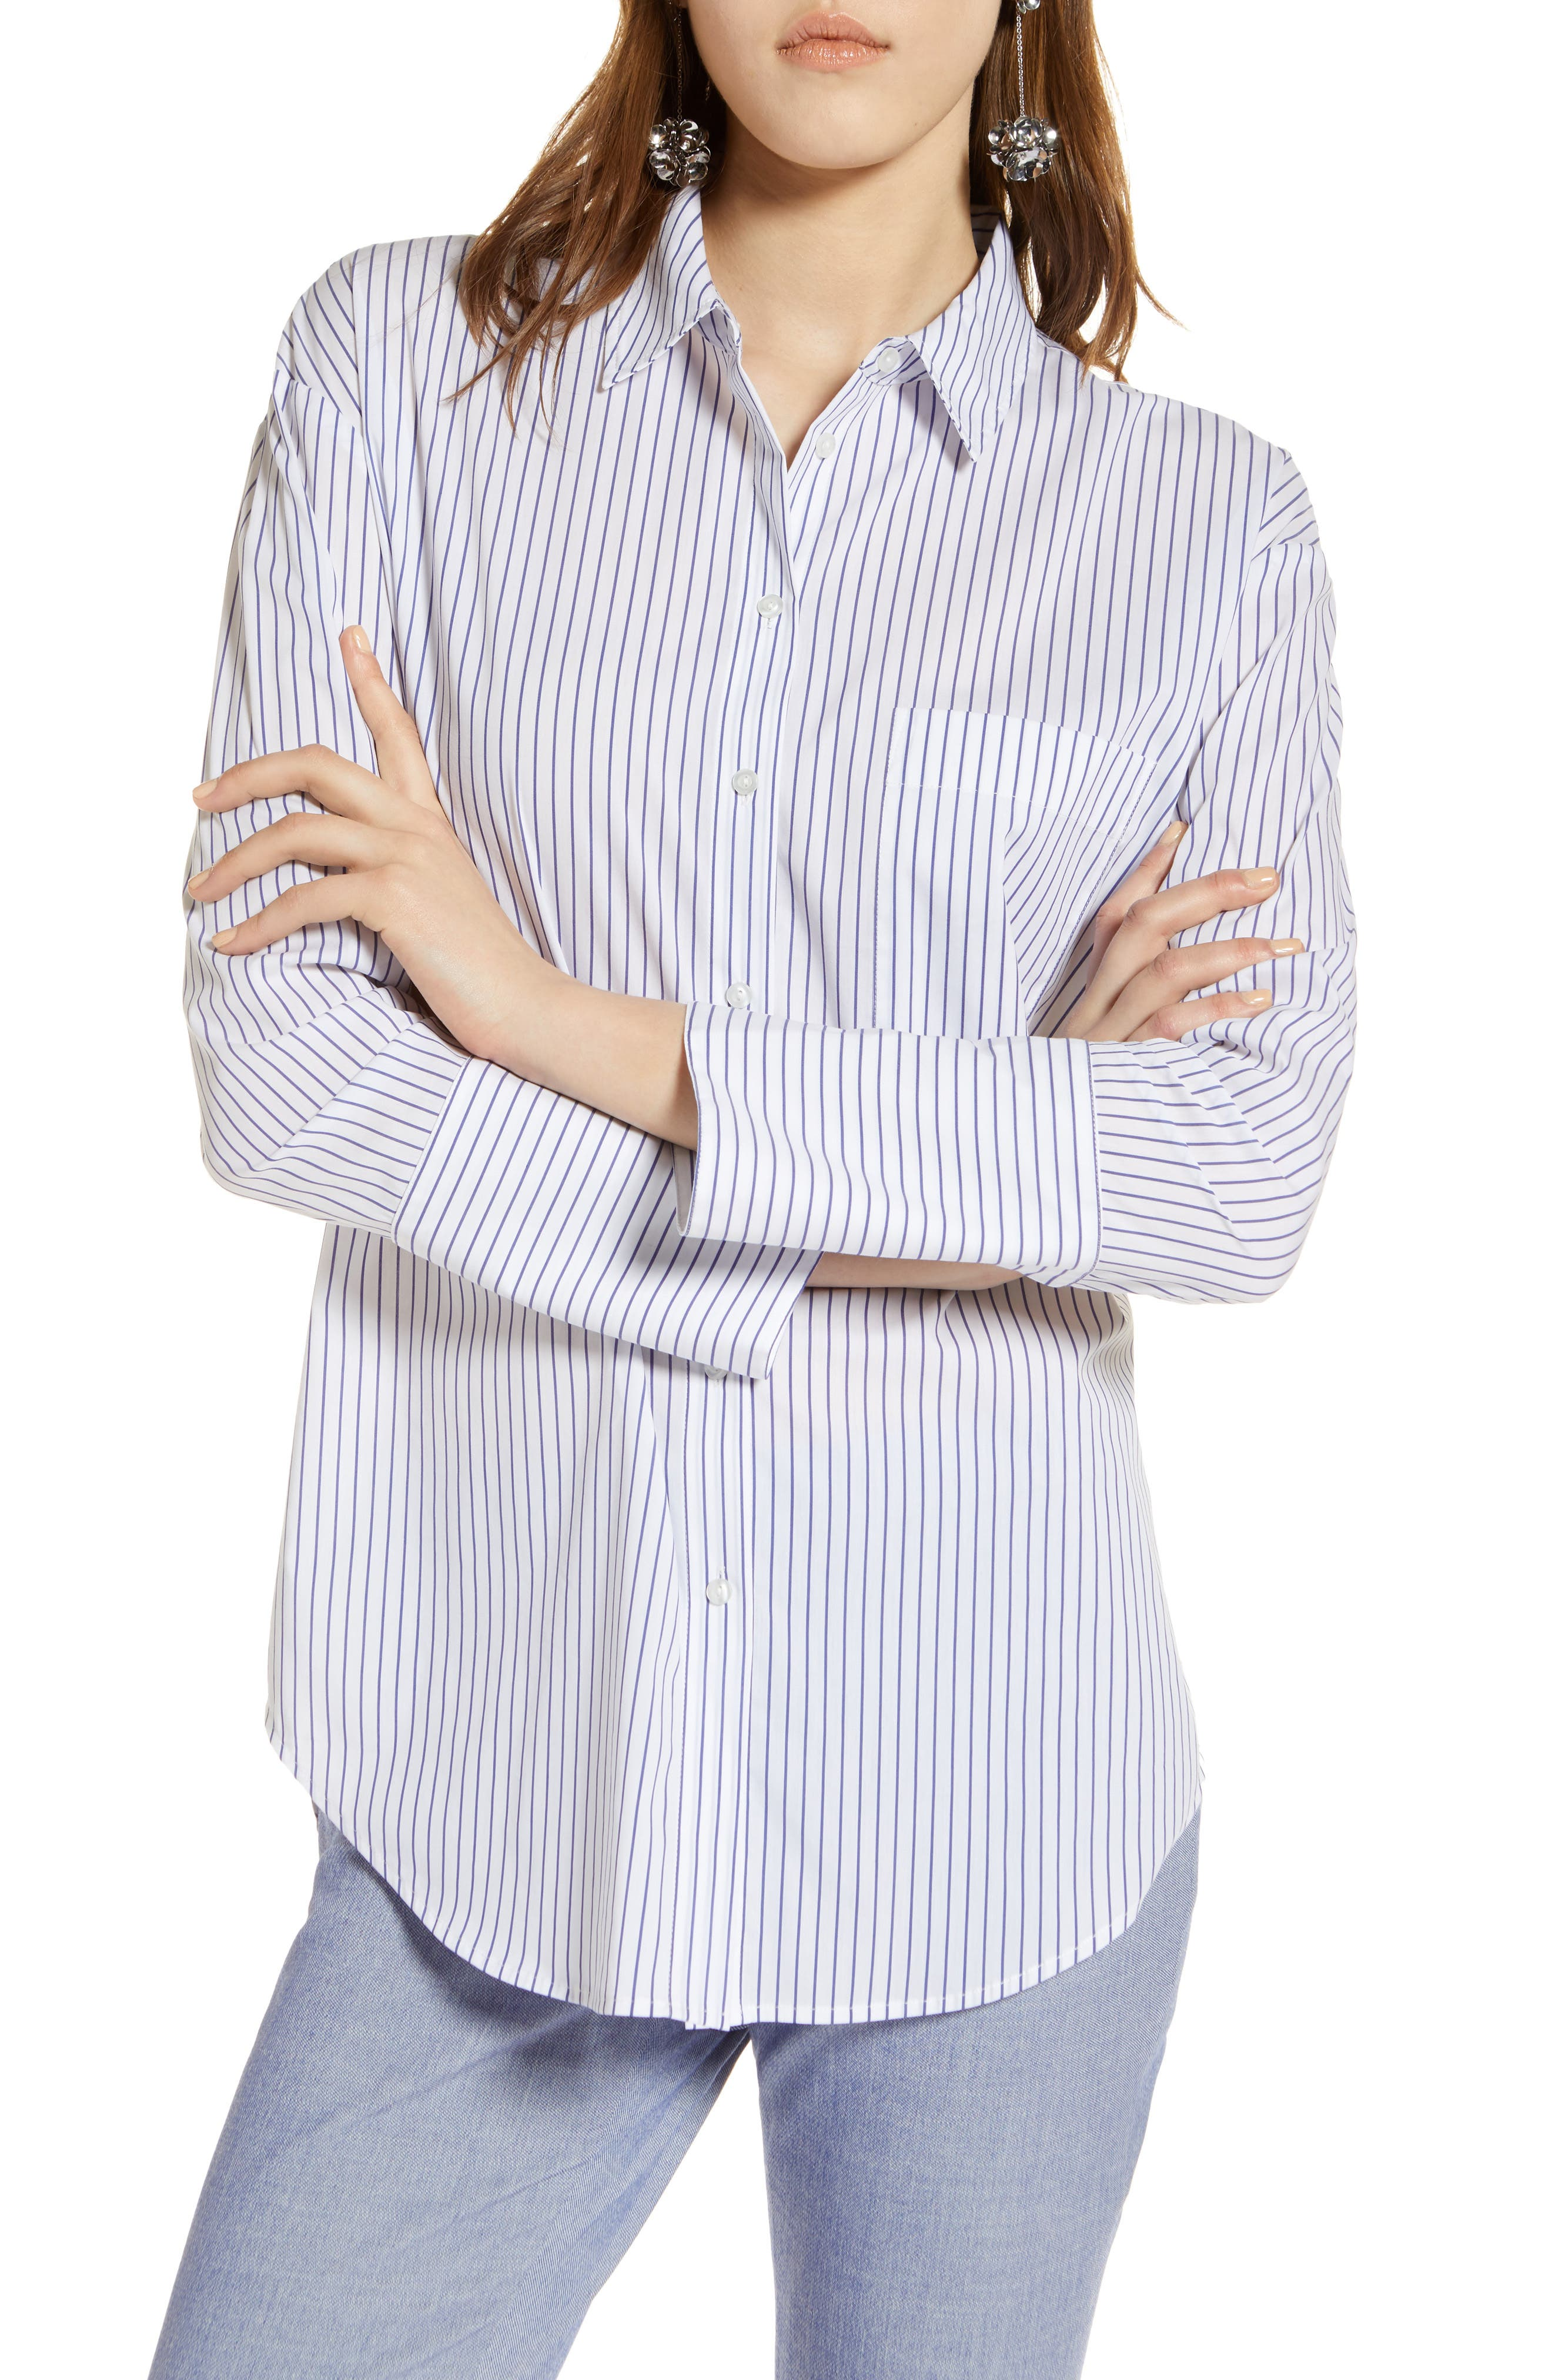 Alternate Image 1 Selected - Halogen® Tie Front Poplin Shirt (Regular & Petite)